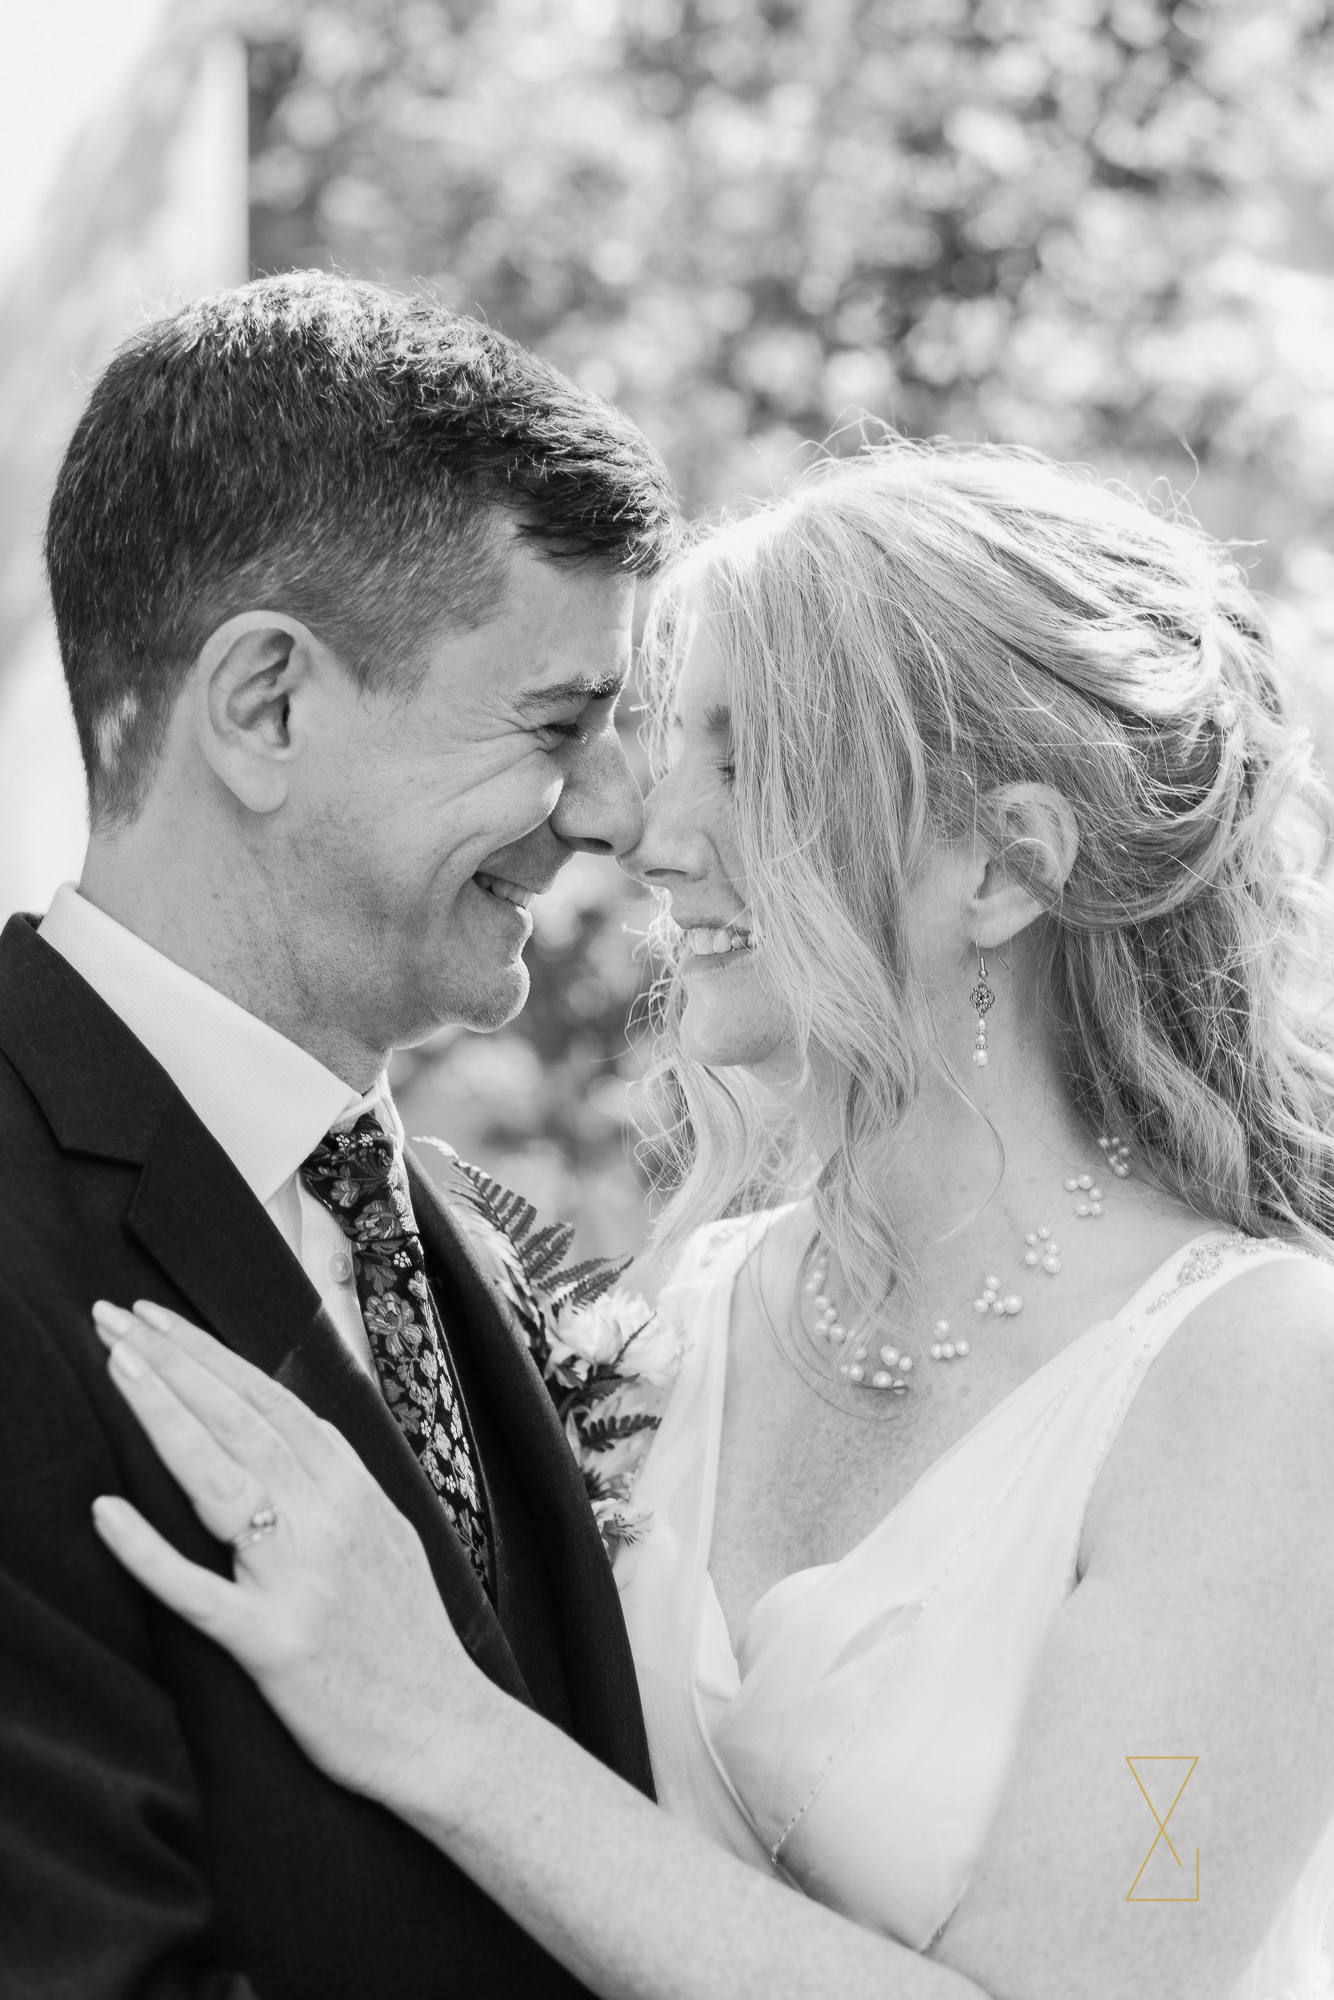 Laughing-bride-and-groom-portrait-Evans-and-Evans-wedding-photography-Cheshire.jpg